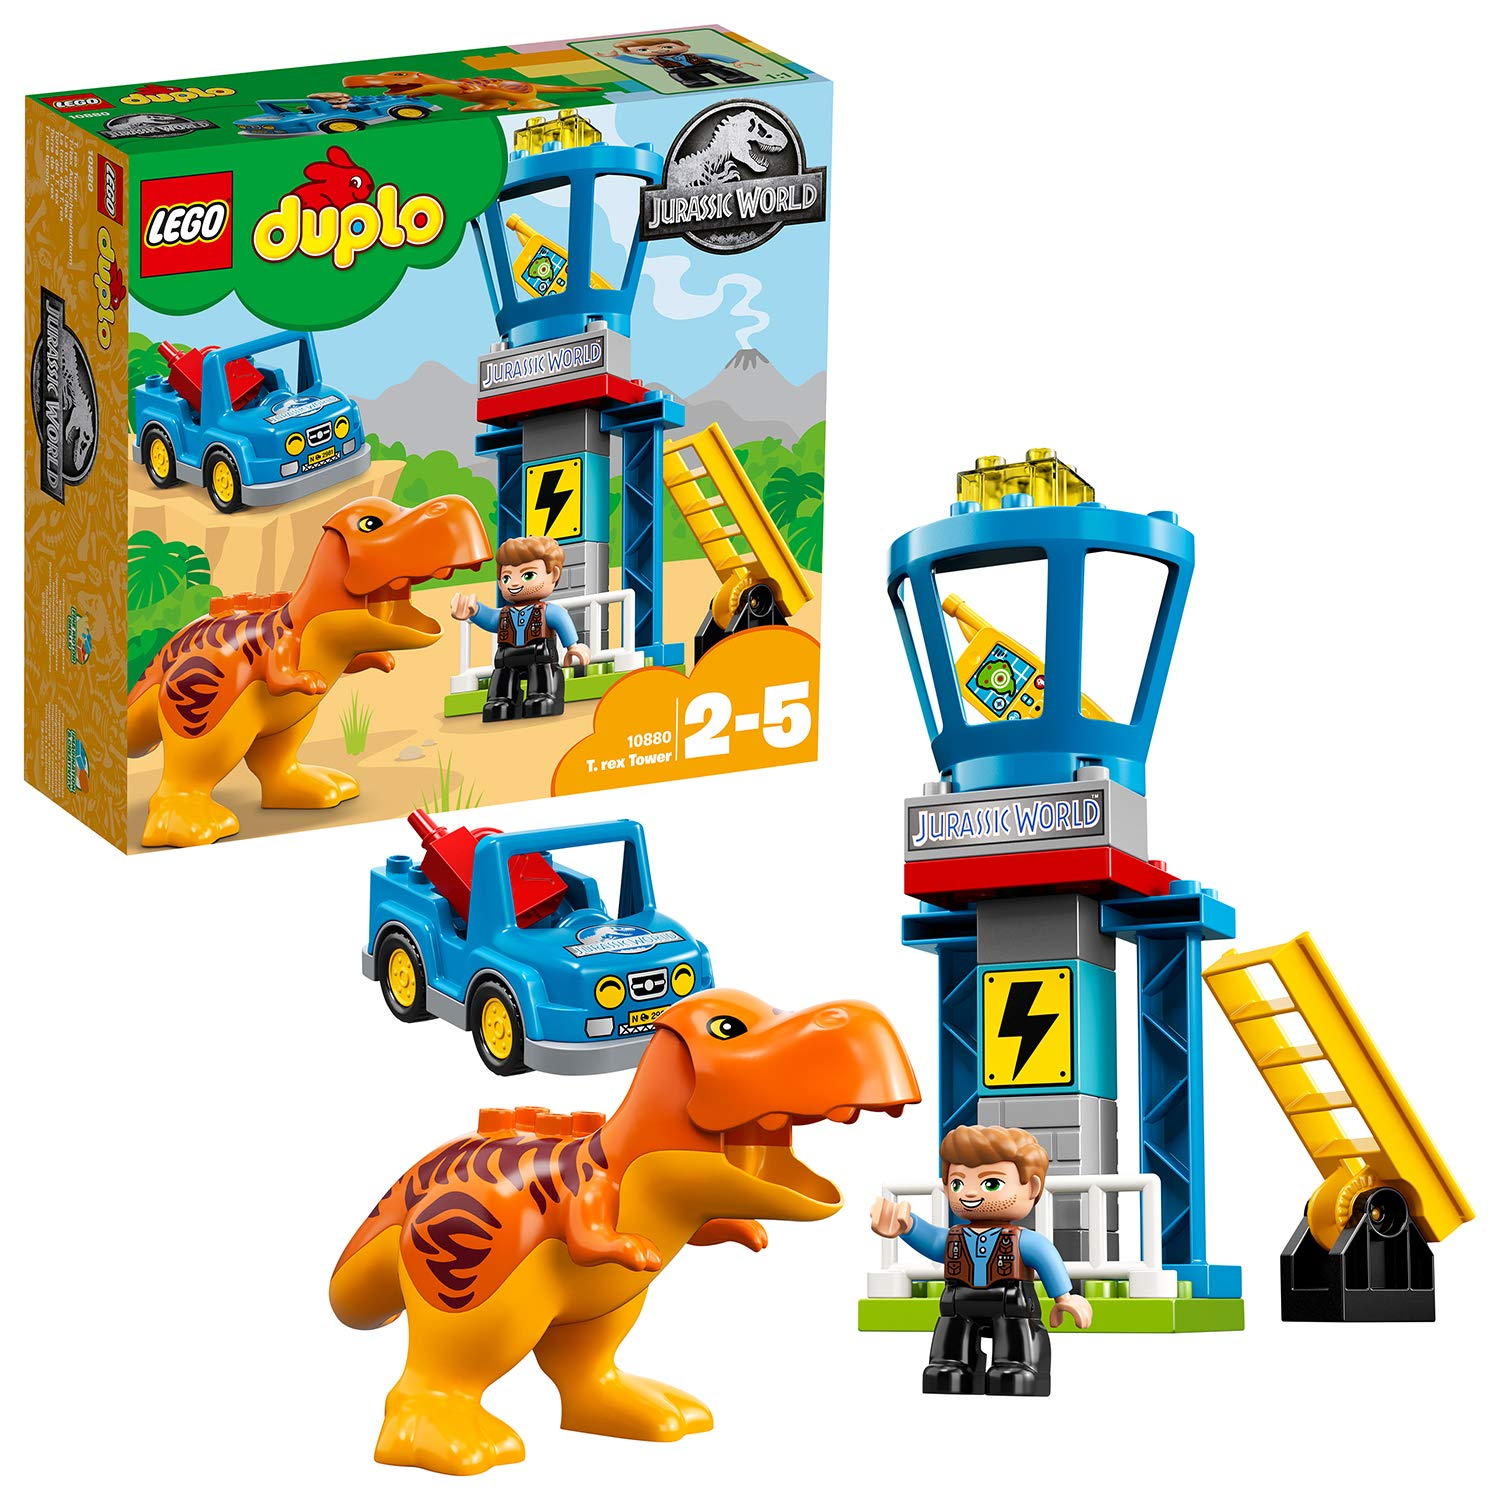 LEGO 10880 DUPLO Jurassic World T  rex Tower Owen Grady Minifigure Owen  Grady Minifigure, Dinosaur Figure, and Toy Car Building Set for Preschool  Kids